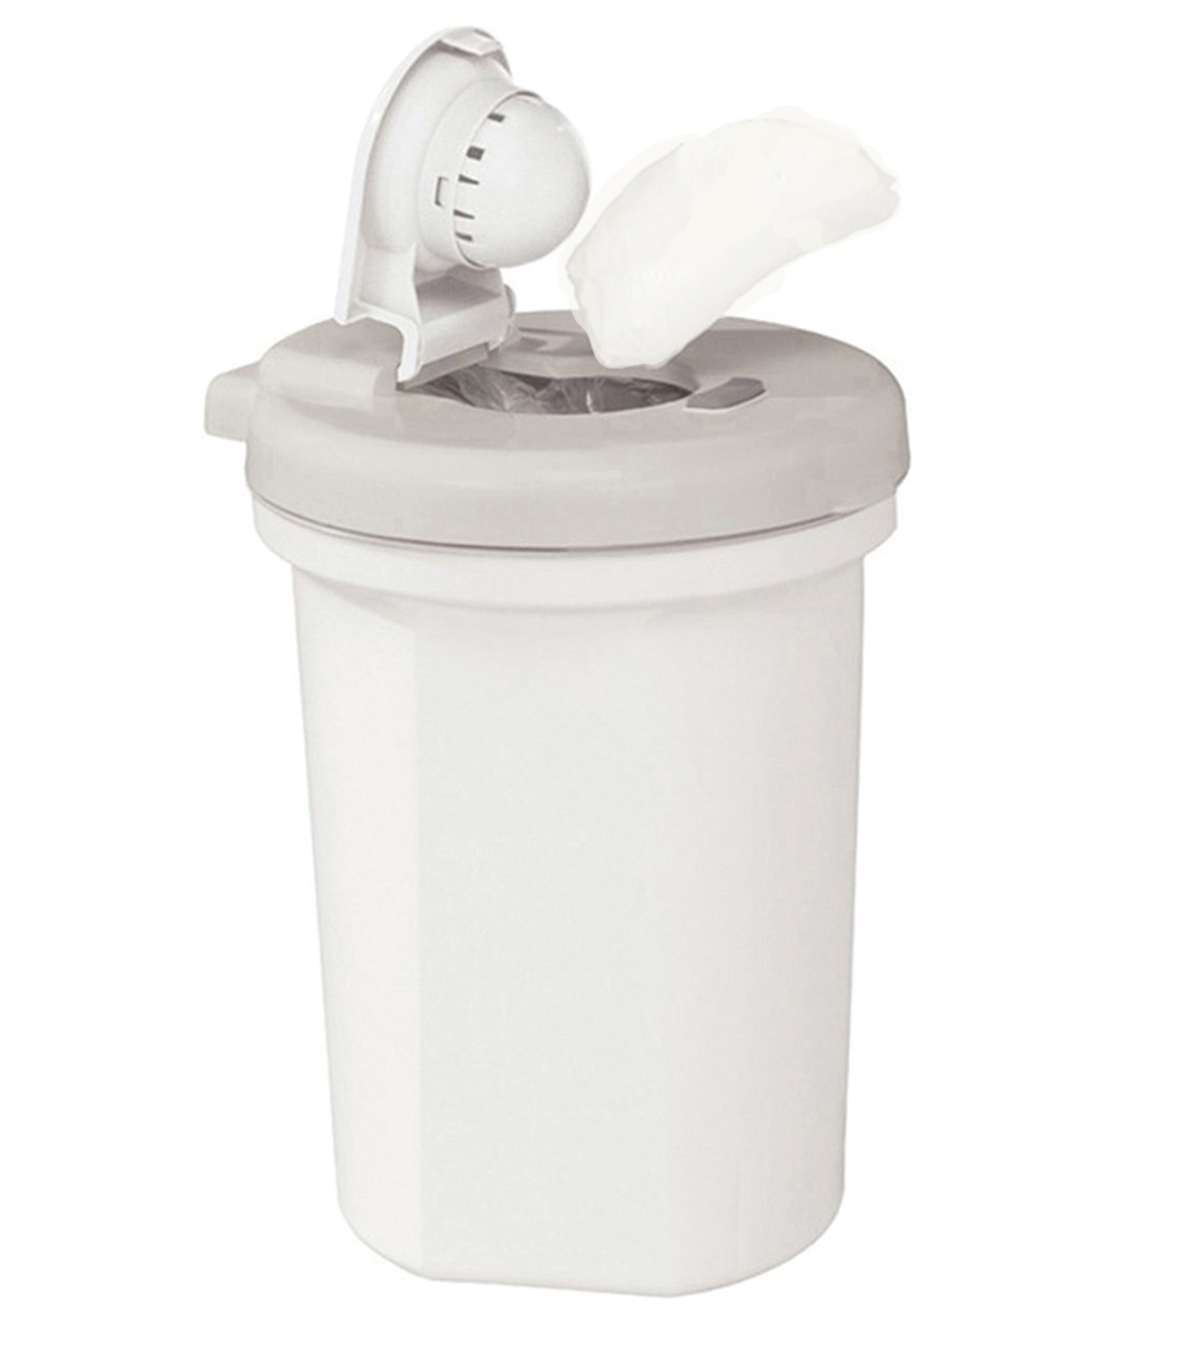 Safety 1st Easy Saver Odor-less Diaper Pail